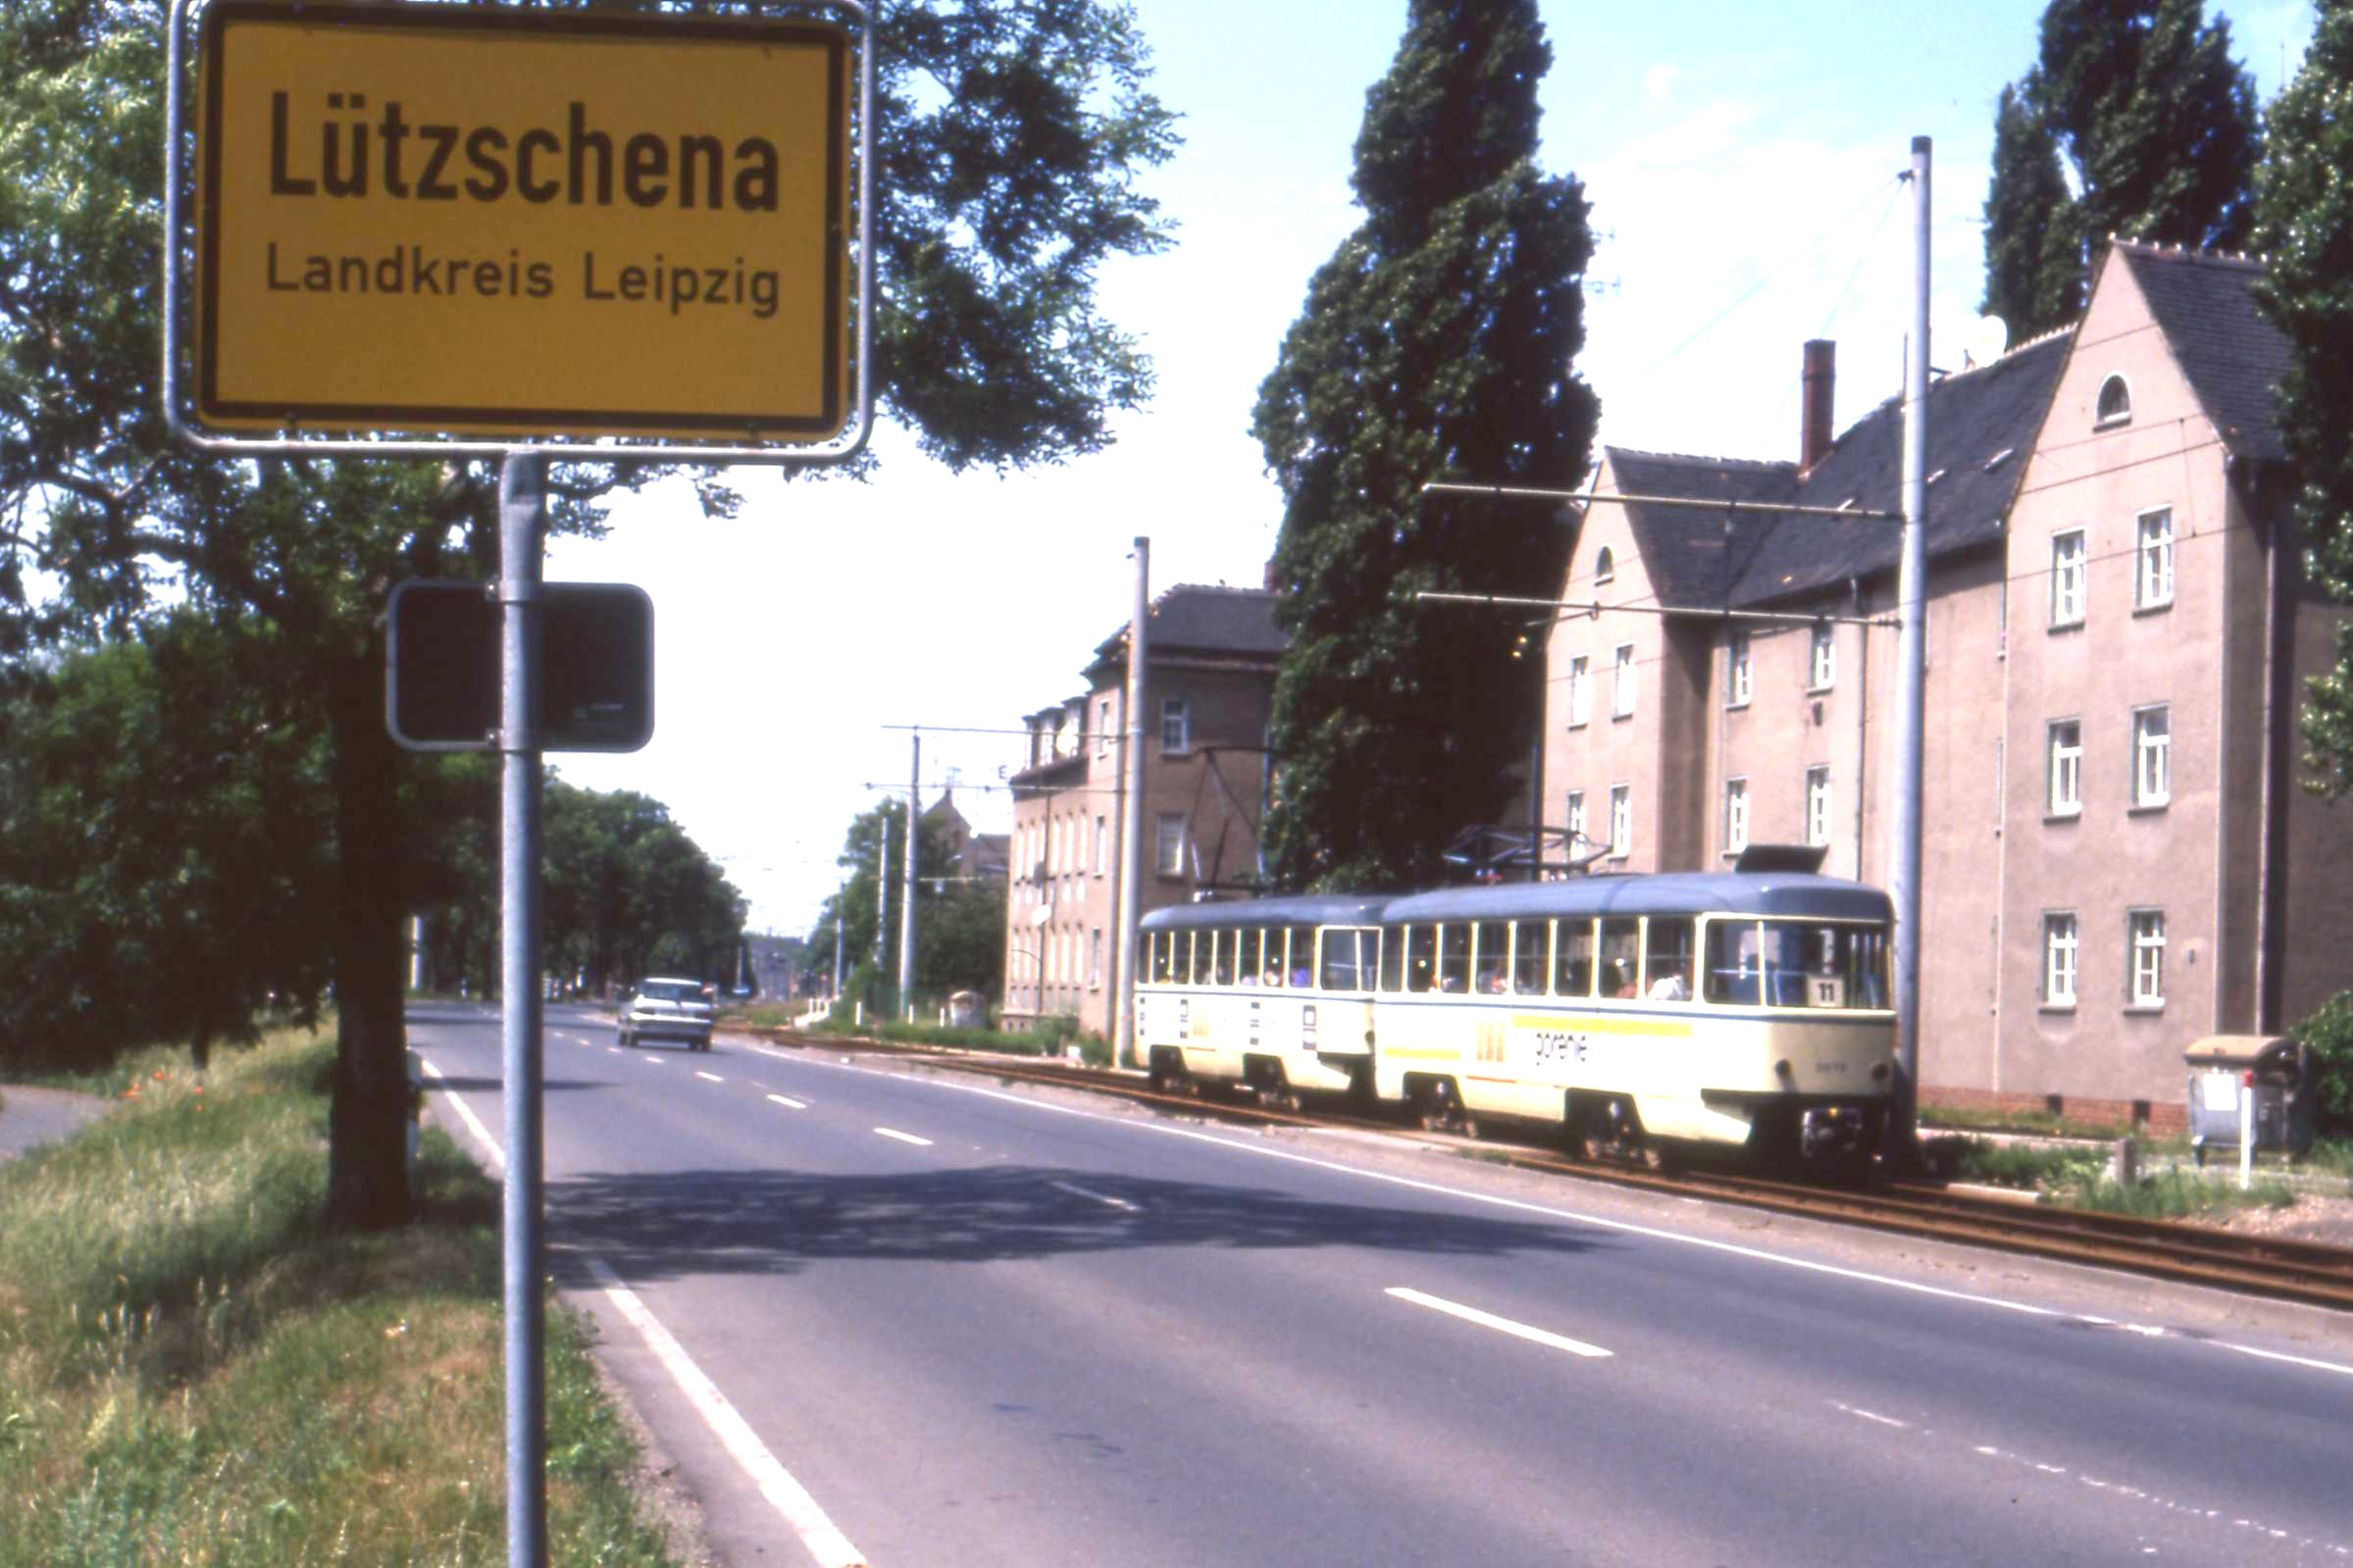 Leipzig Lützschene. Tatra tram, June 1993 | Flickr - Photo Sharing!